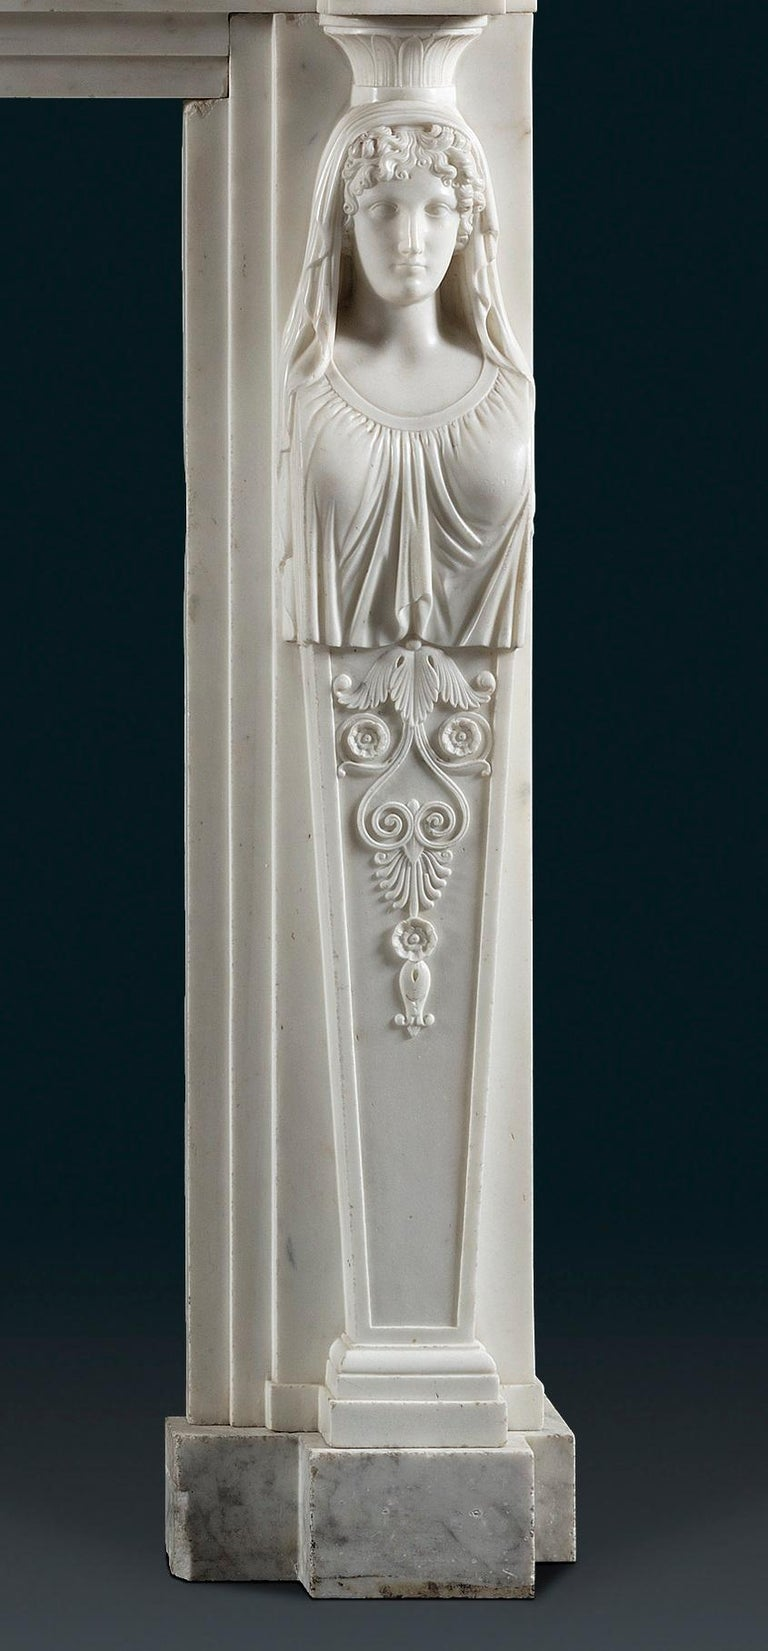 Regency Period, Neoclassical Fireplace in White Statuary Marble In Good Condition For Sale In London, GB